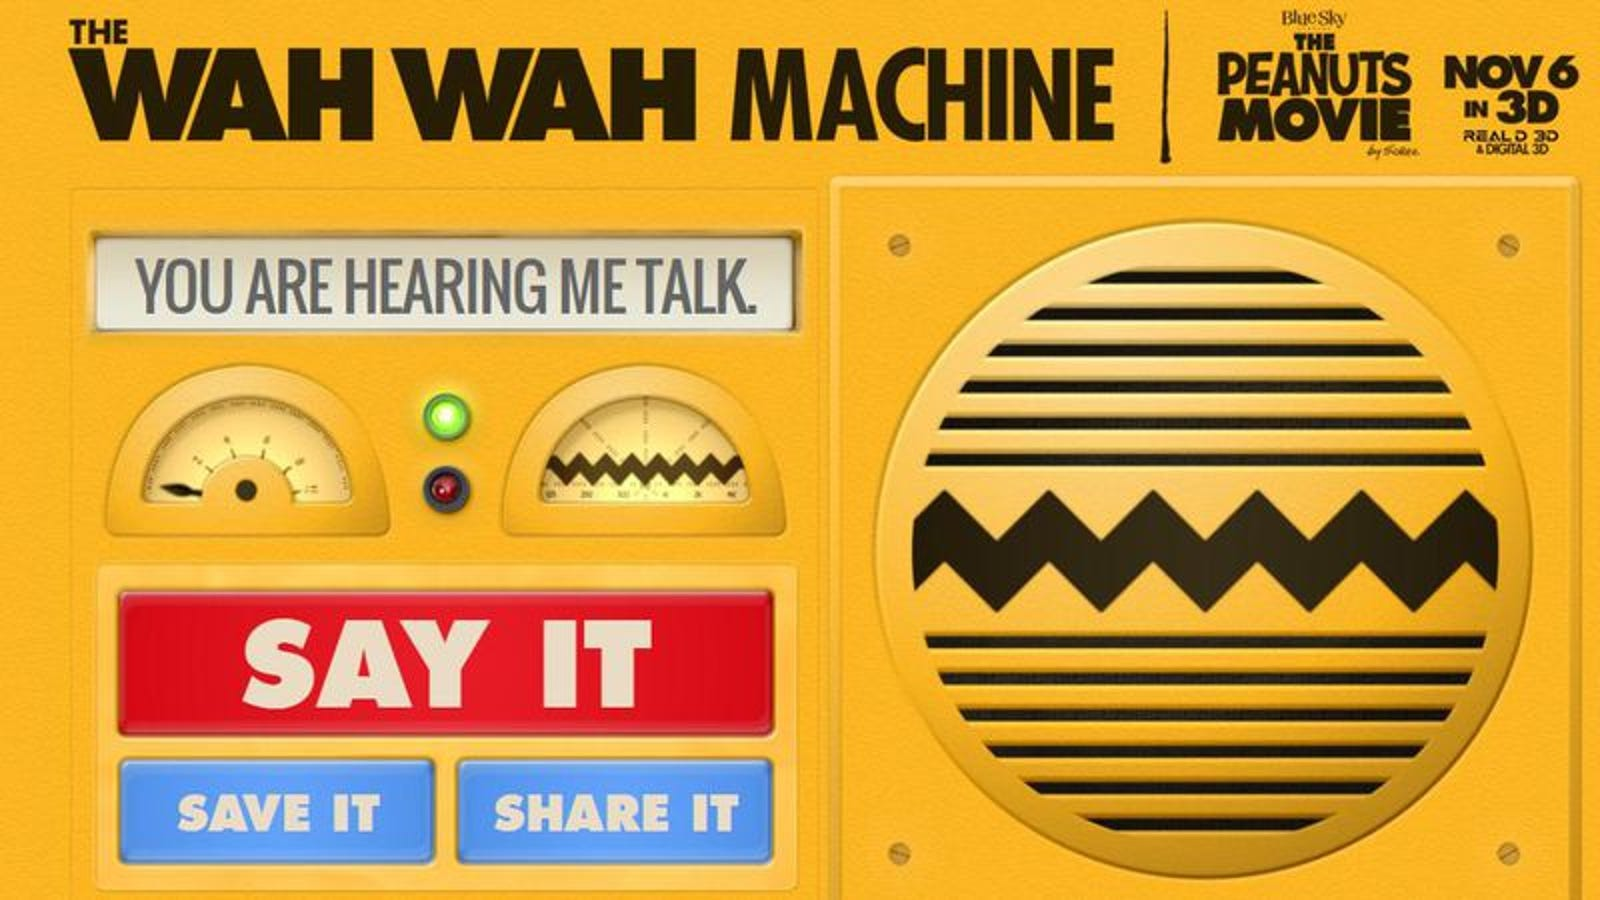 Translate Phrases To Peanuts Teacher Talk With The Wah Wah Machine